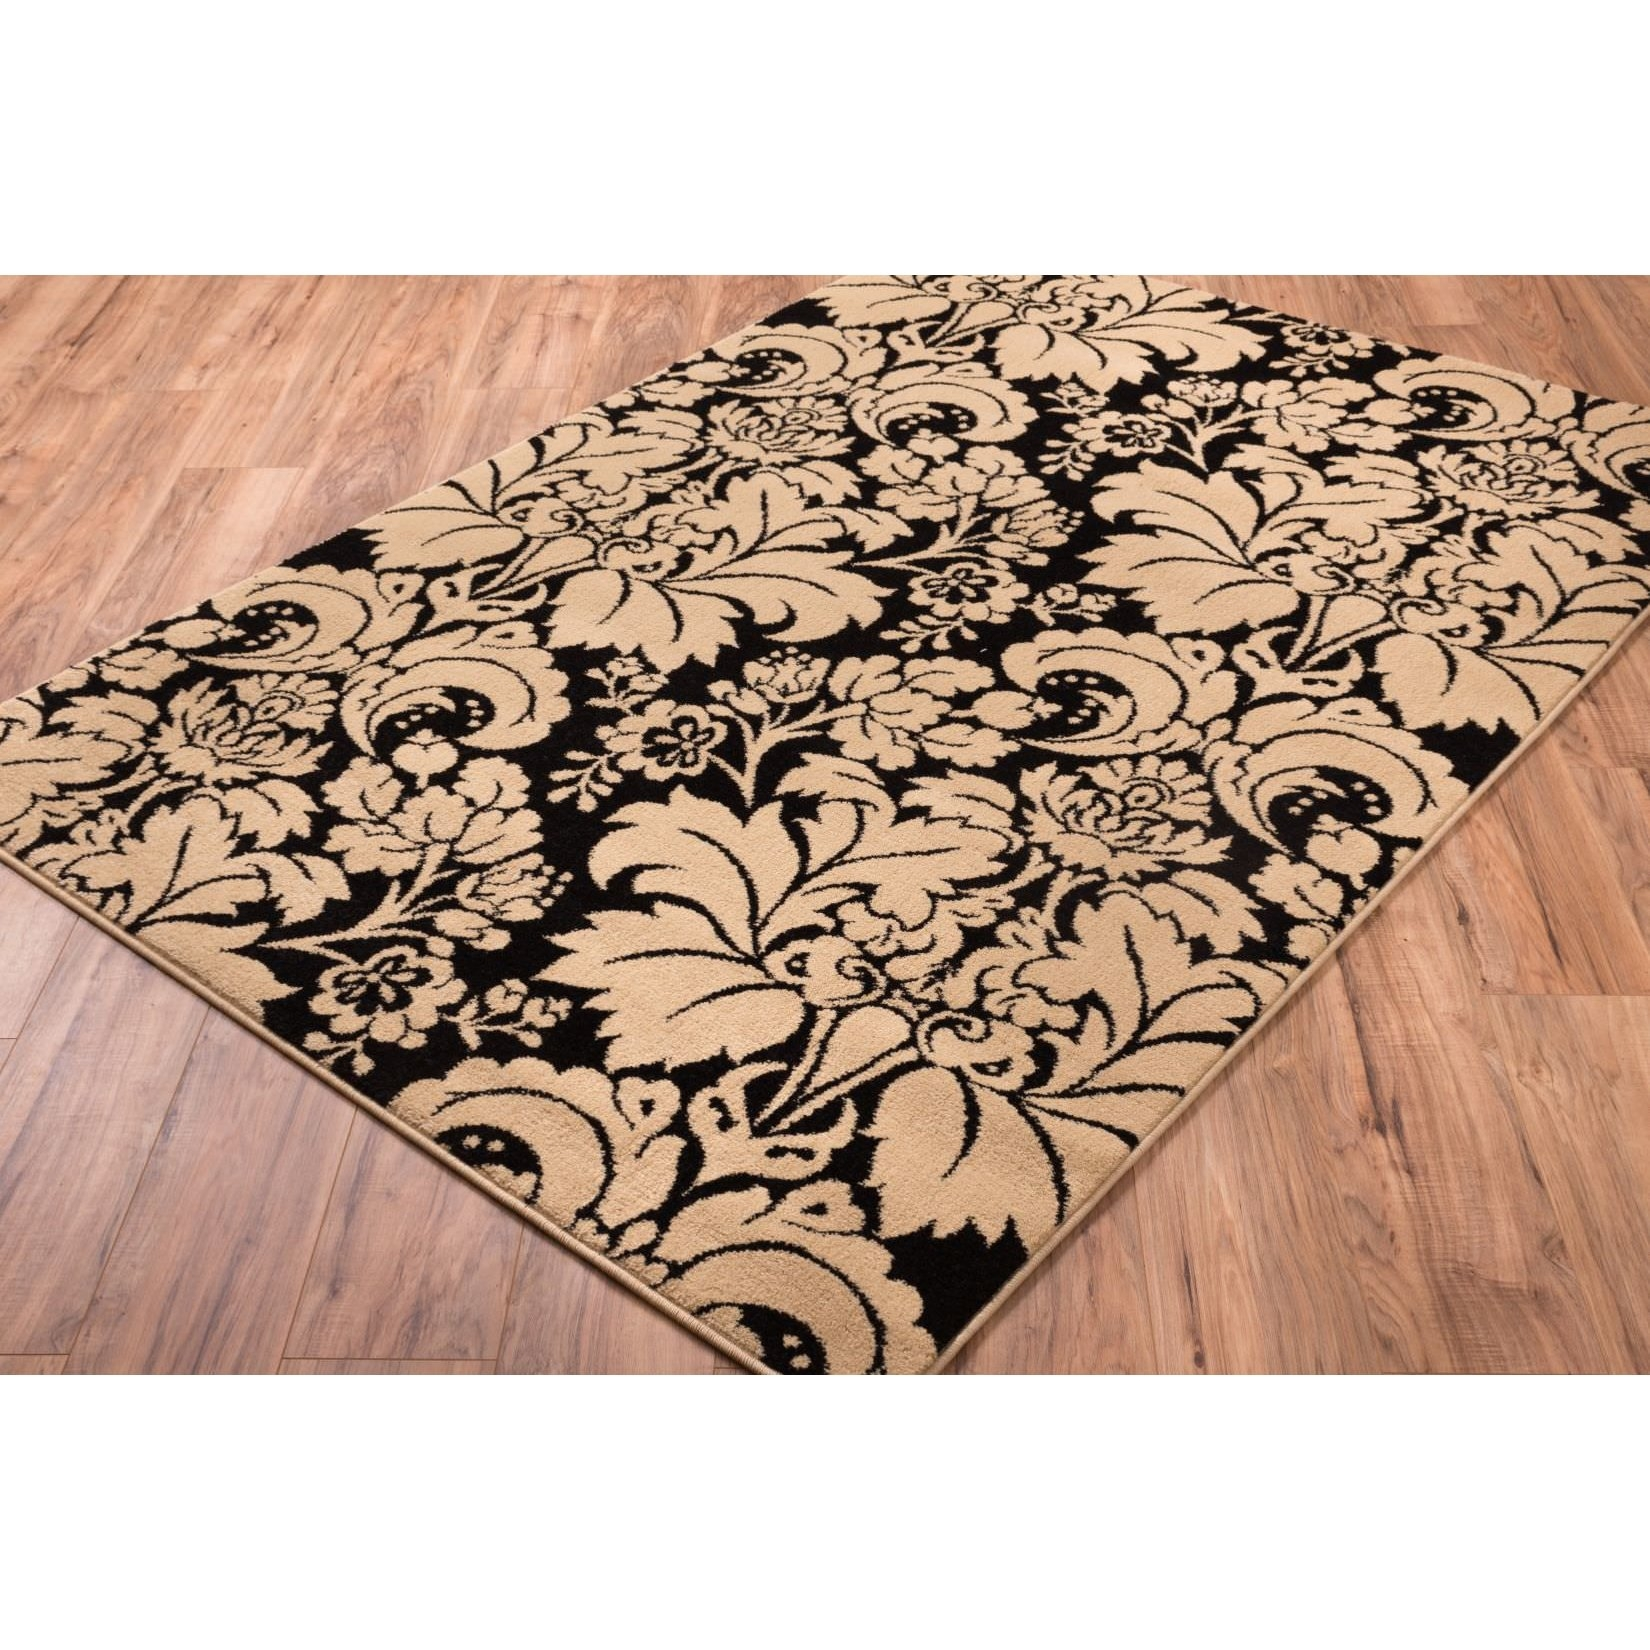 Permalink to Black And White Toile Bathroom Rugs